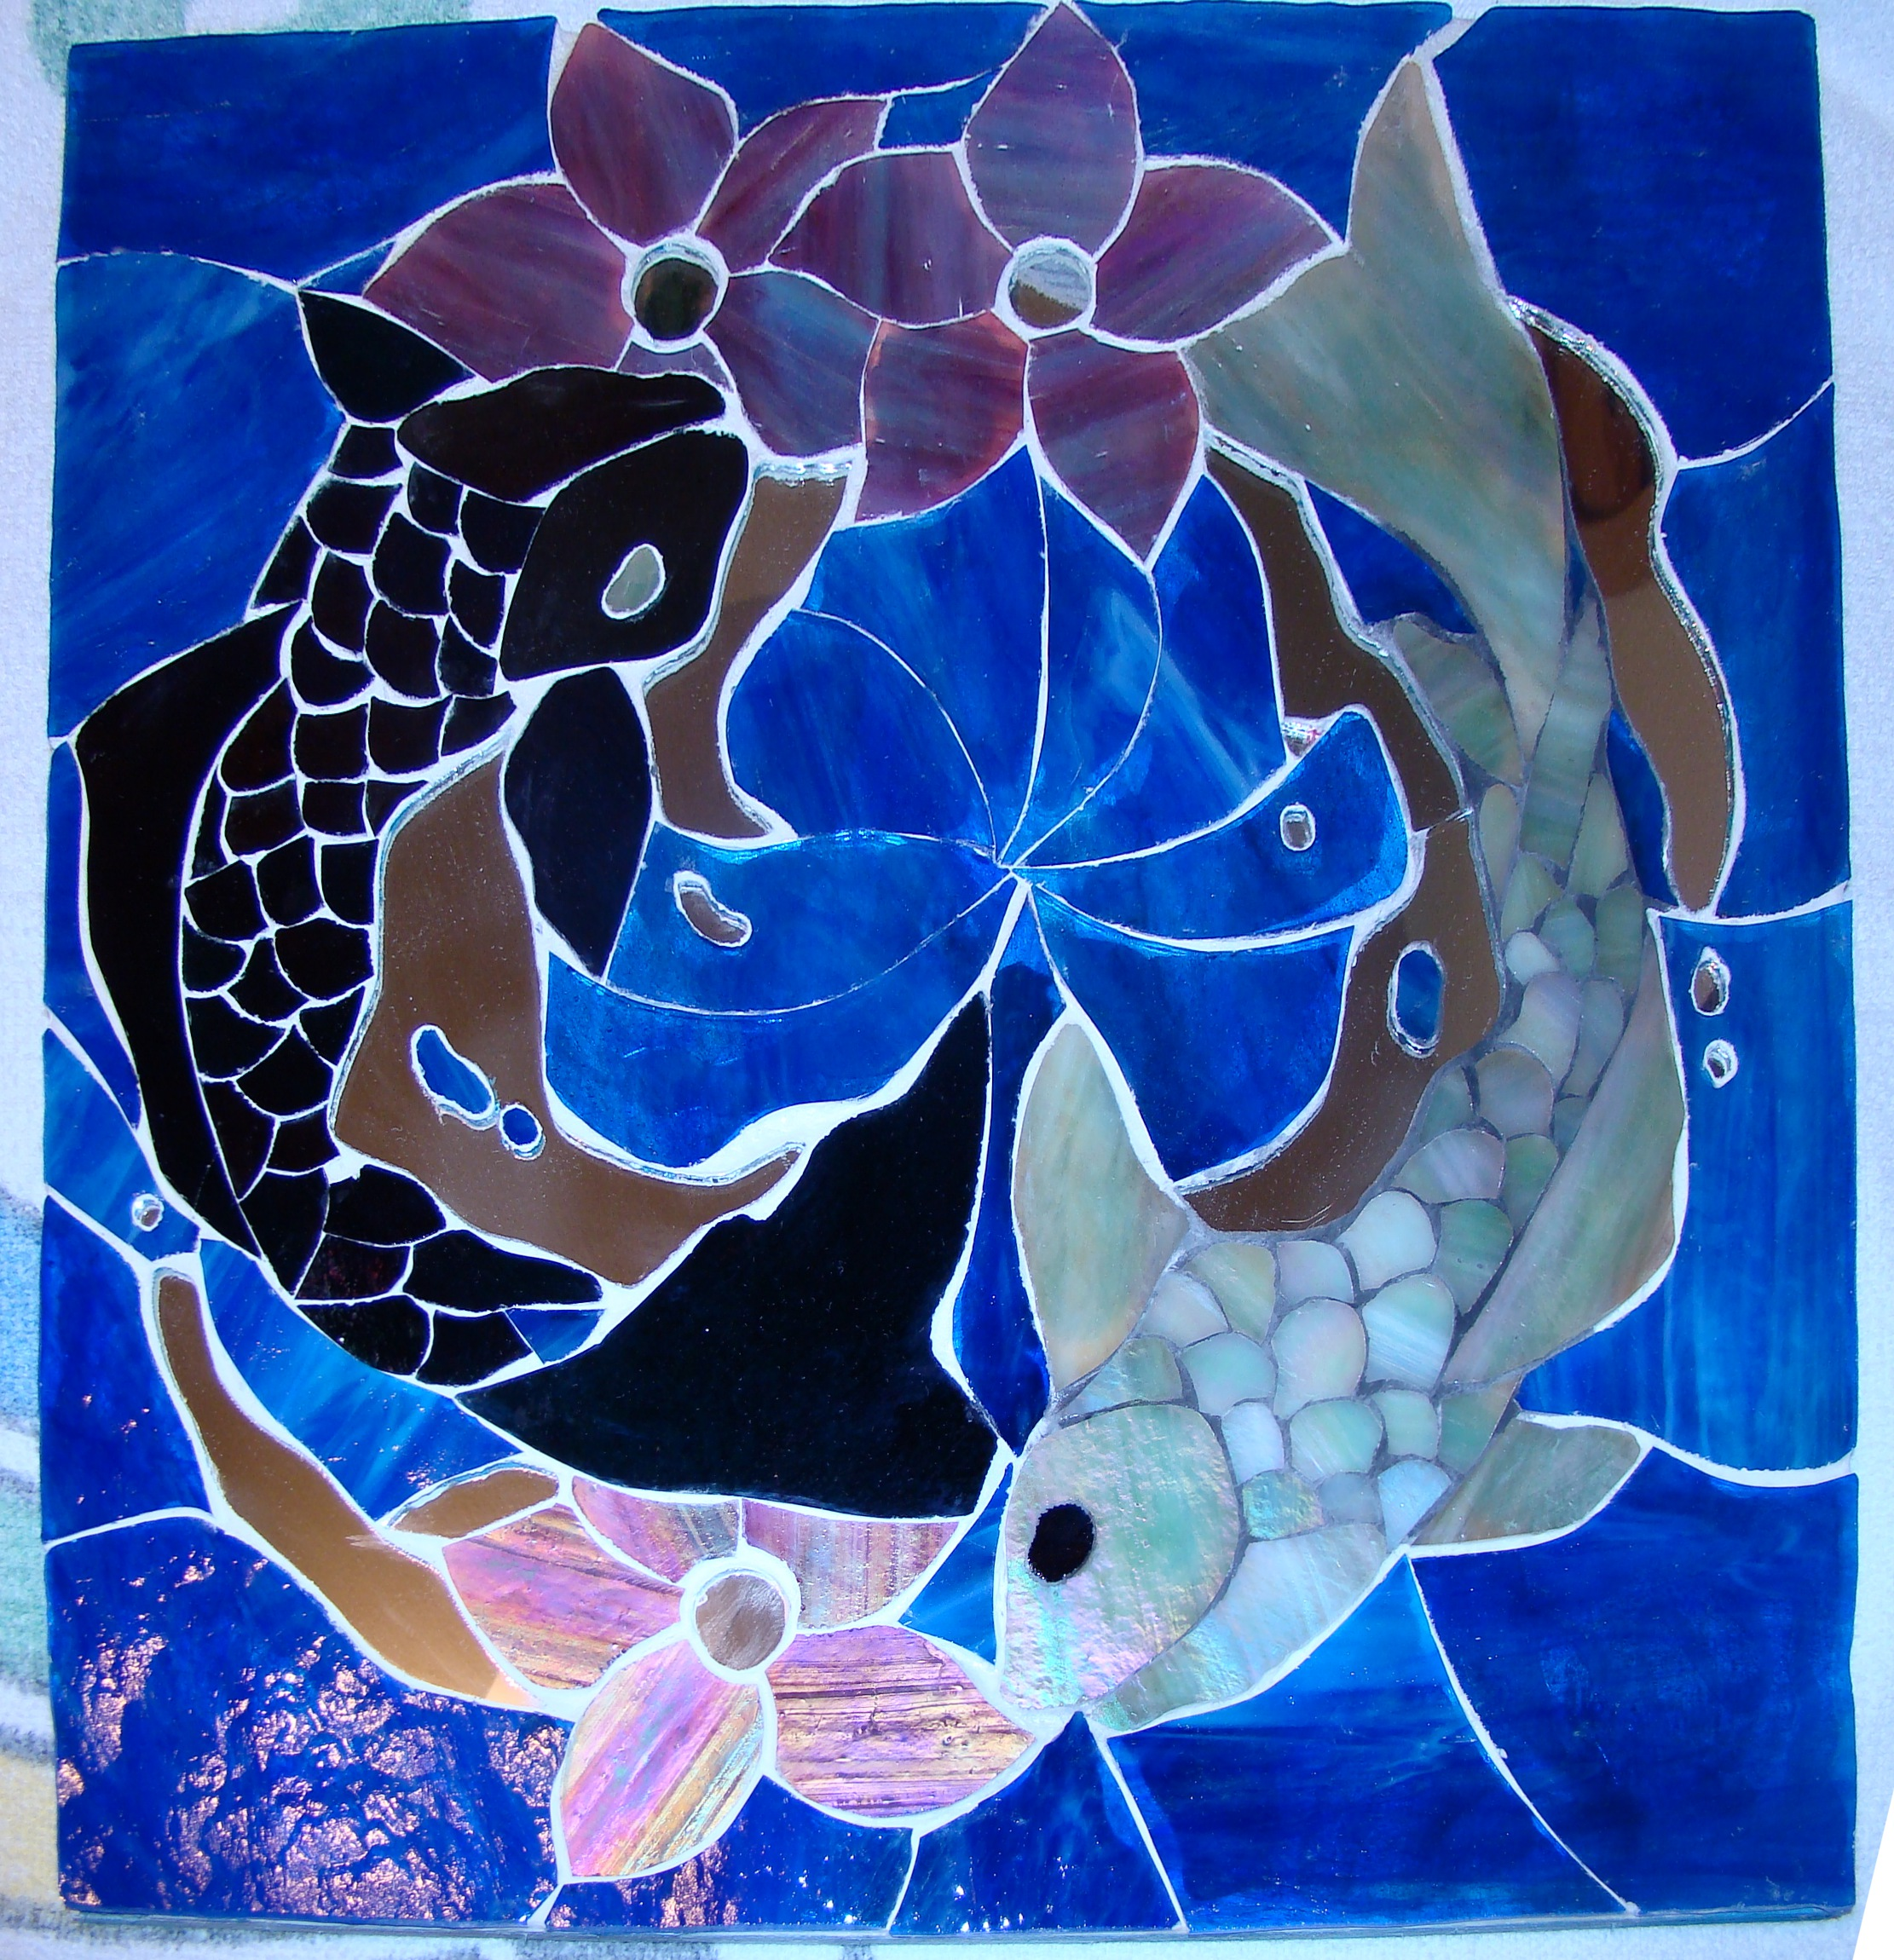 Yin yang koi fish mosaic by leinani1992 on deviantart for Yin and yang koi fish